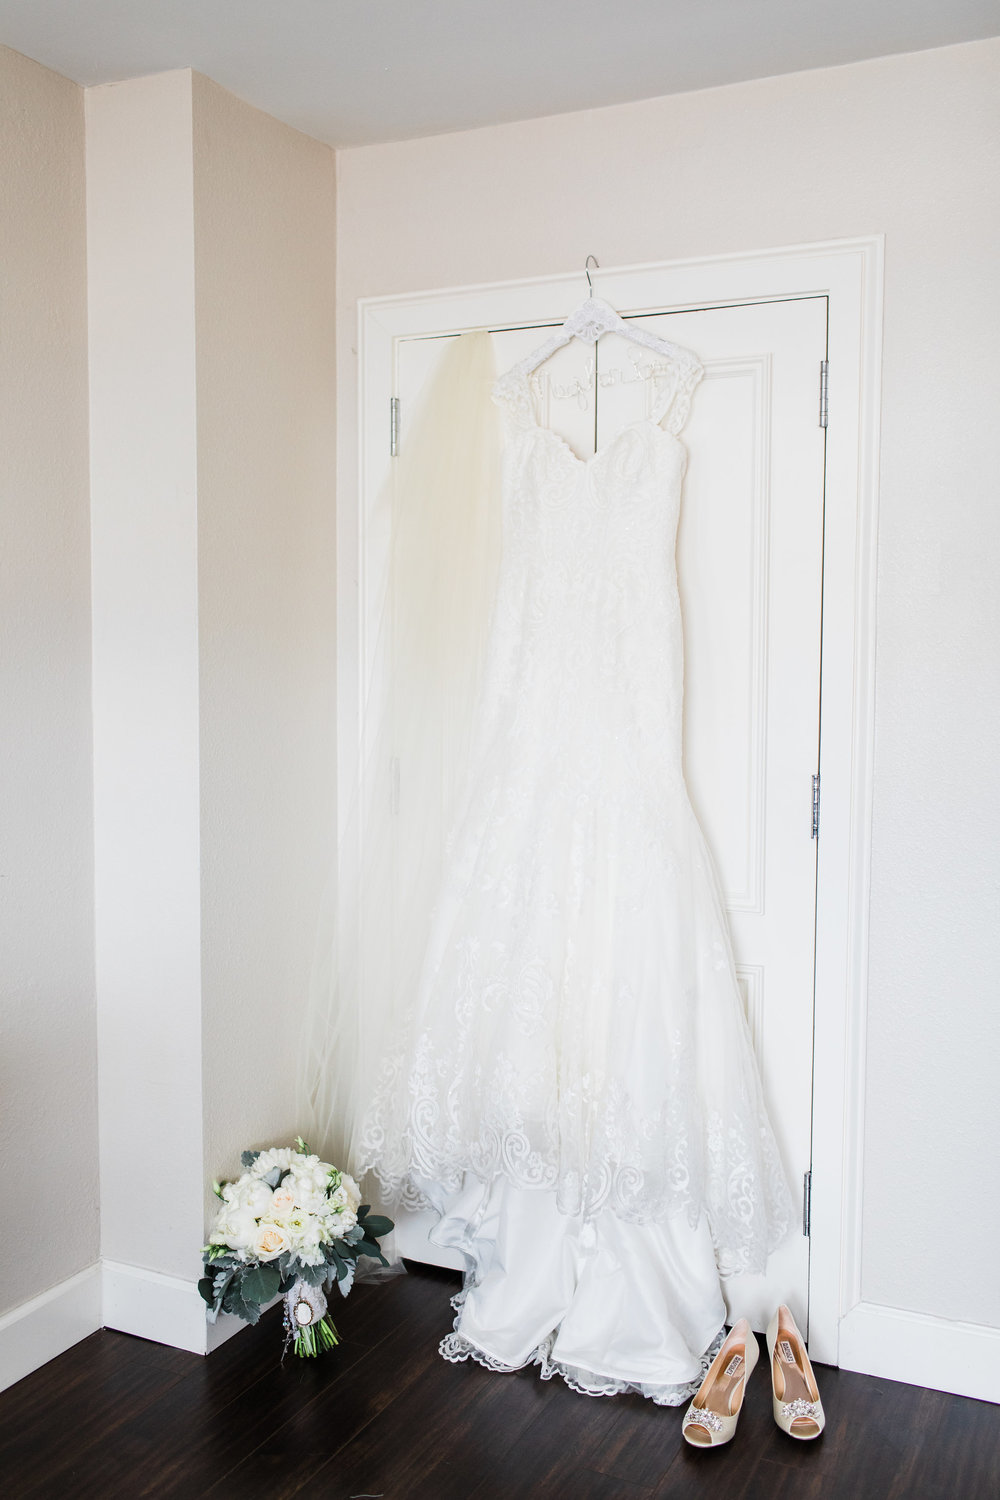 savannah-bridal-shop-i-and-b-bride-meghan-rosamund-gown-by-maggie-sottero-st-johns-cathedral-wedding-apt-b-photography-1.JPG